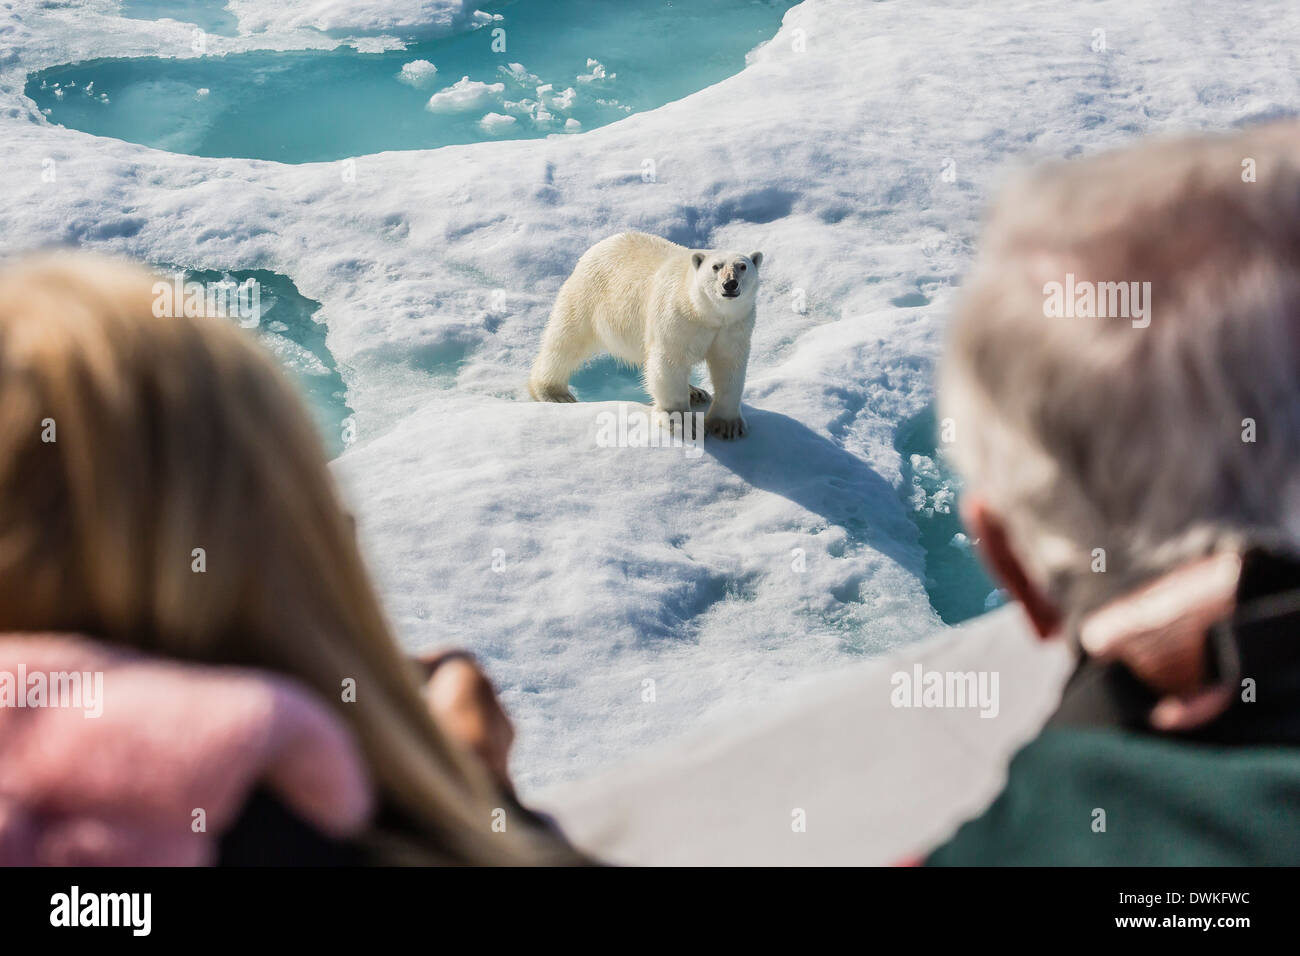 Guests from the Lindblad Expedition ship with polar bear (Ursus maritimus), Cumberland Peninsula, Baffin Island, Stock Photo